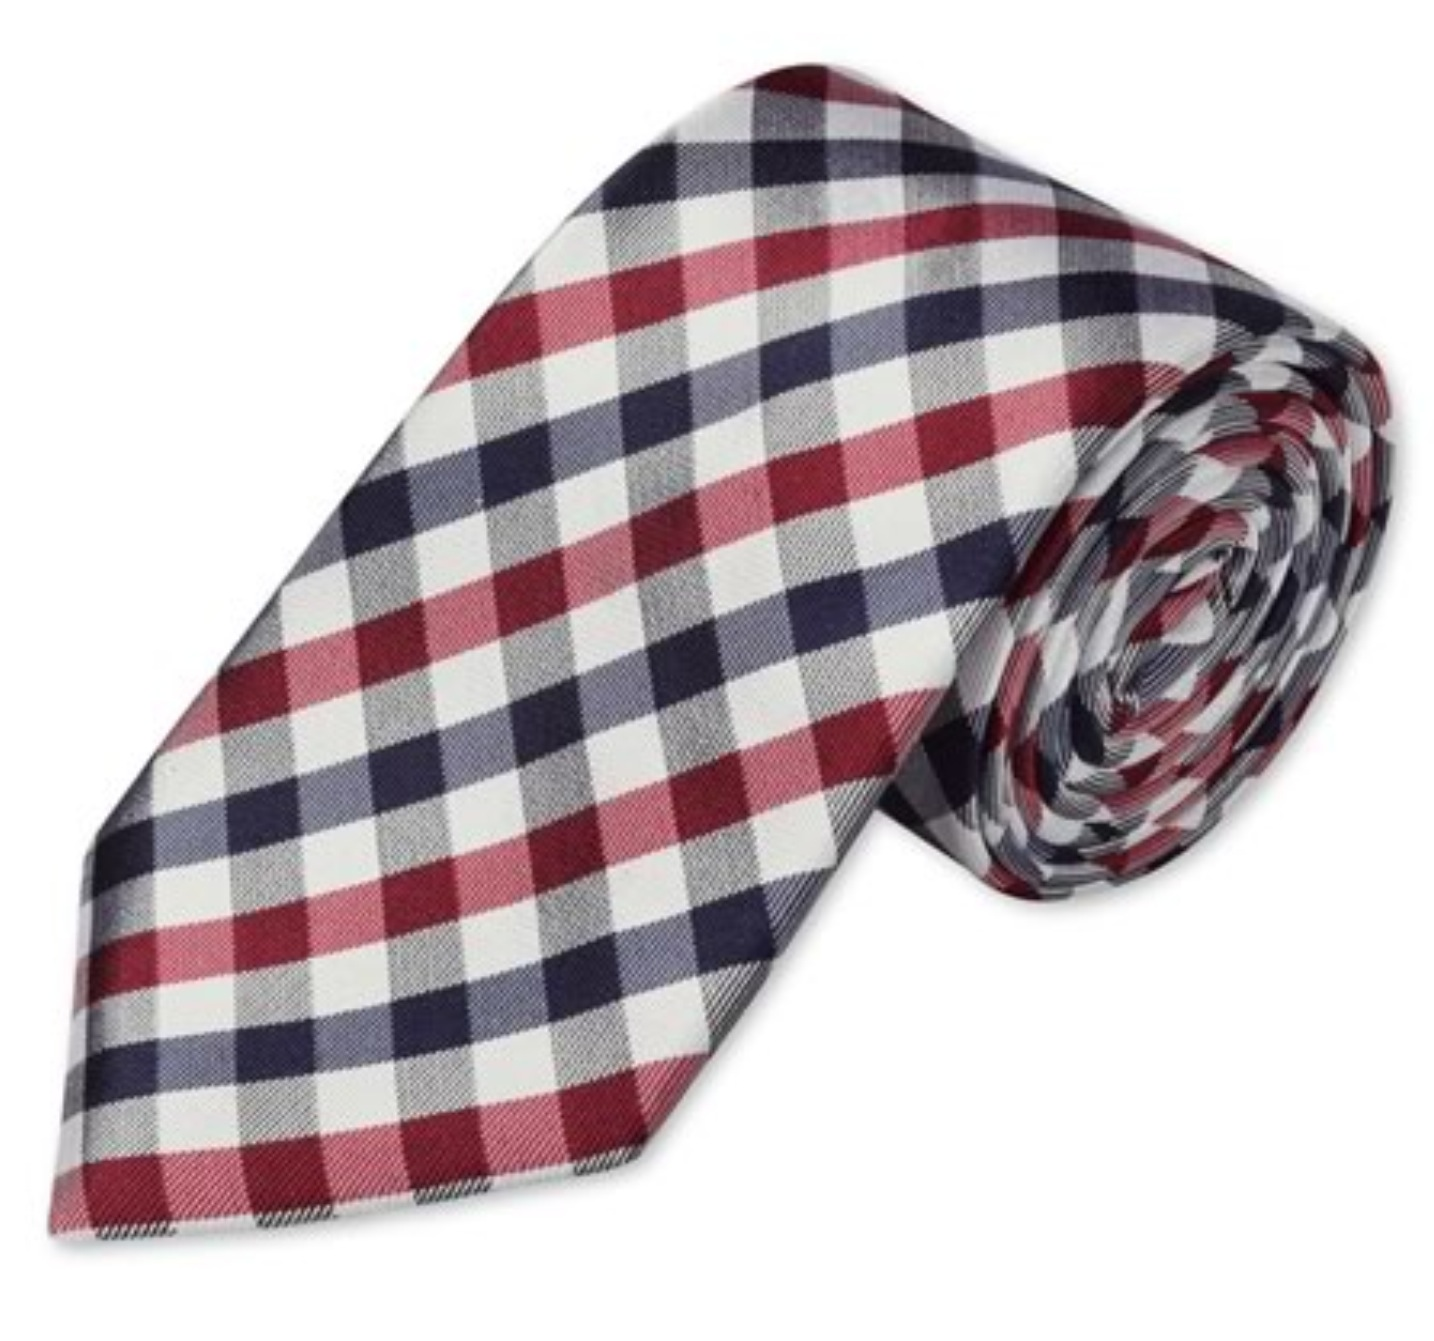 Red & Navy large gingham woven tie